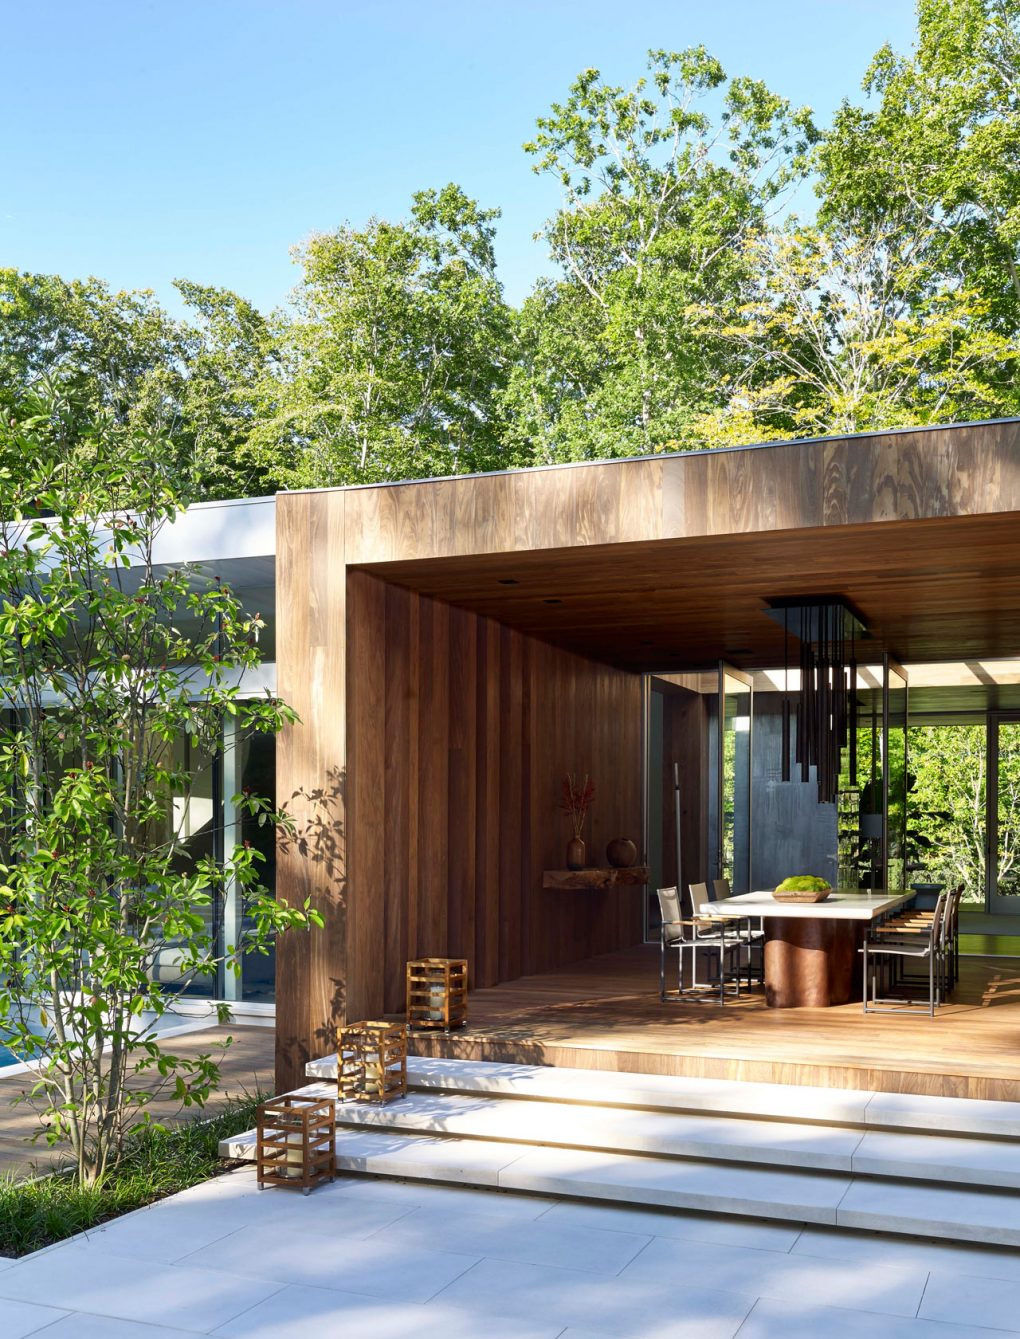 House Renovation For A New Fall Decor house renovation House Renovation For A New Fall Decor East Hampton Home Makeover From Gray to Gorgeous 5